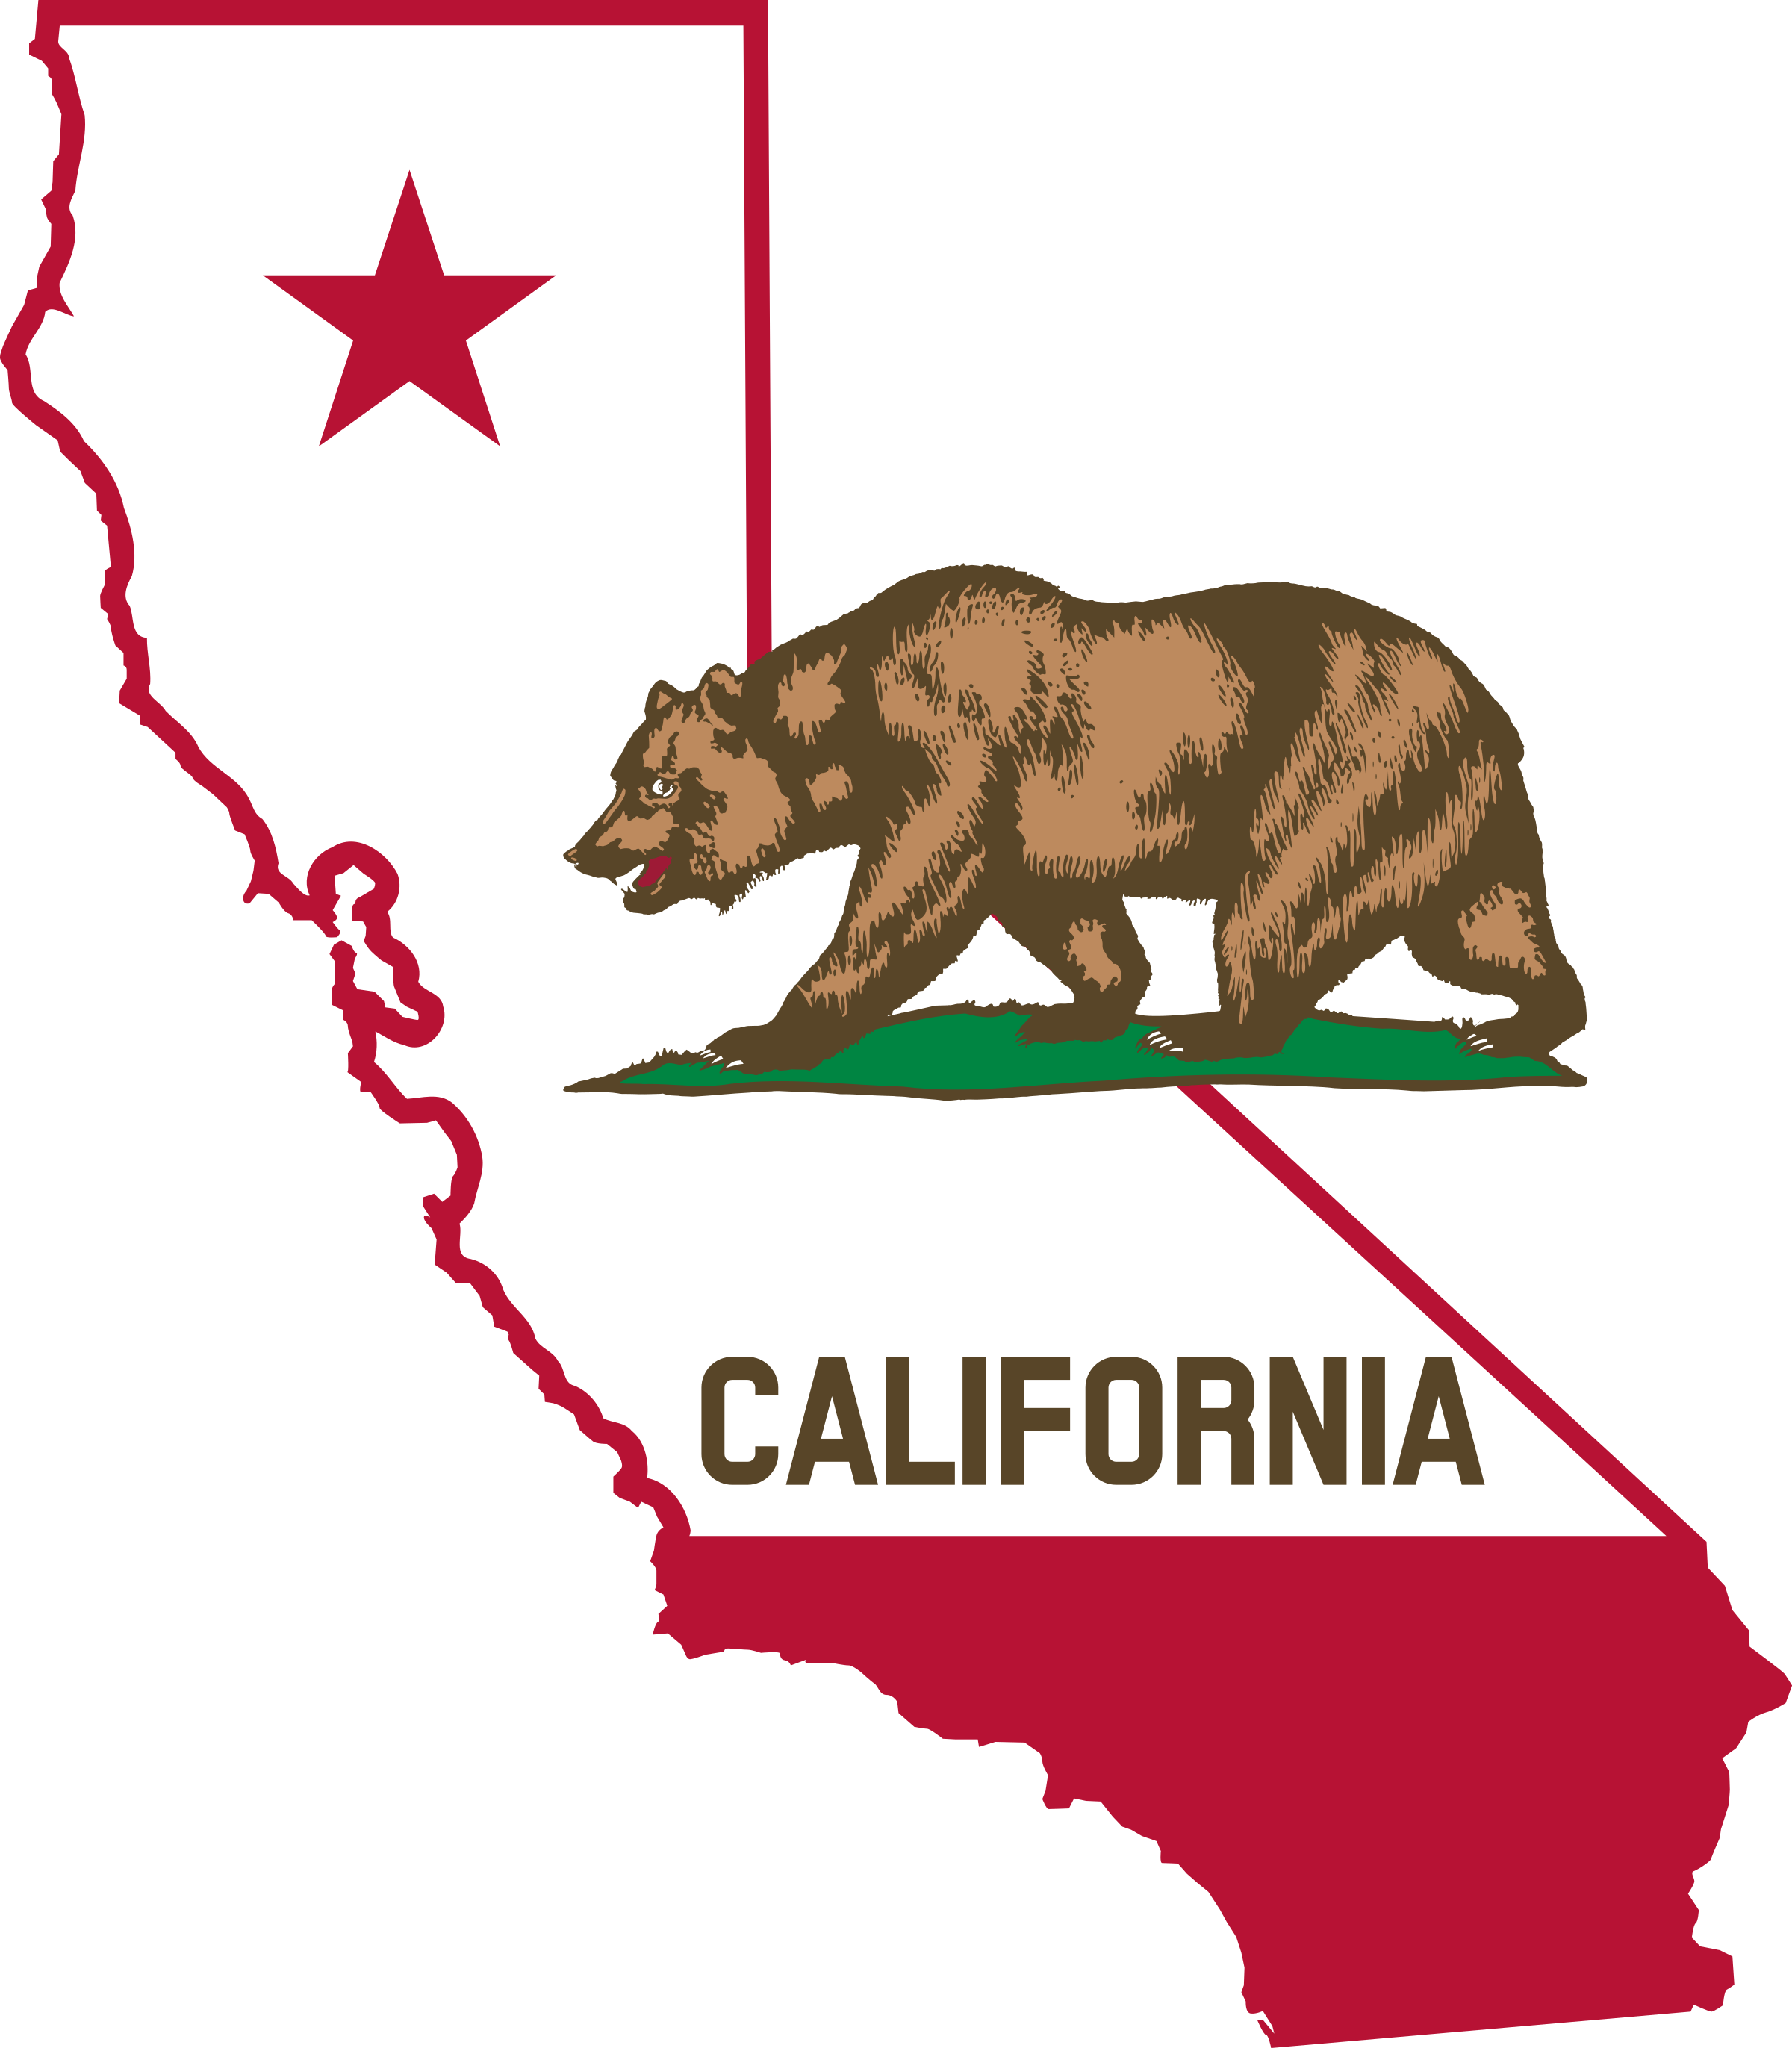 California Outline And Flag Png 2400 2743 California State Outline California Outline California Map